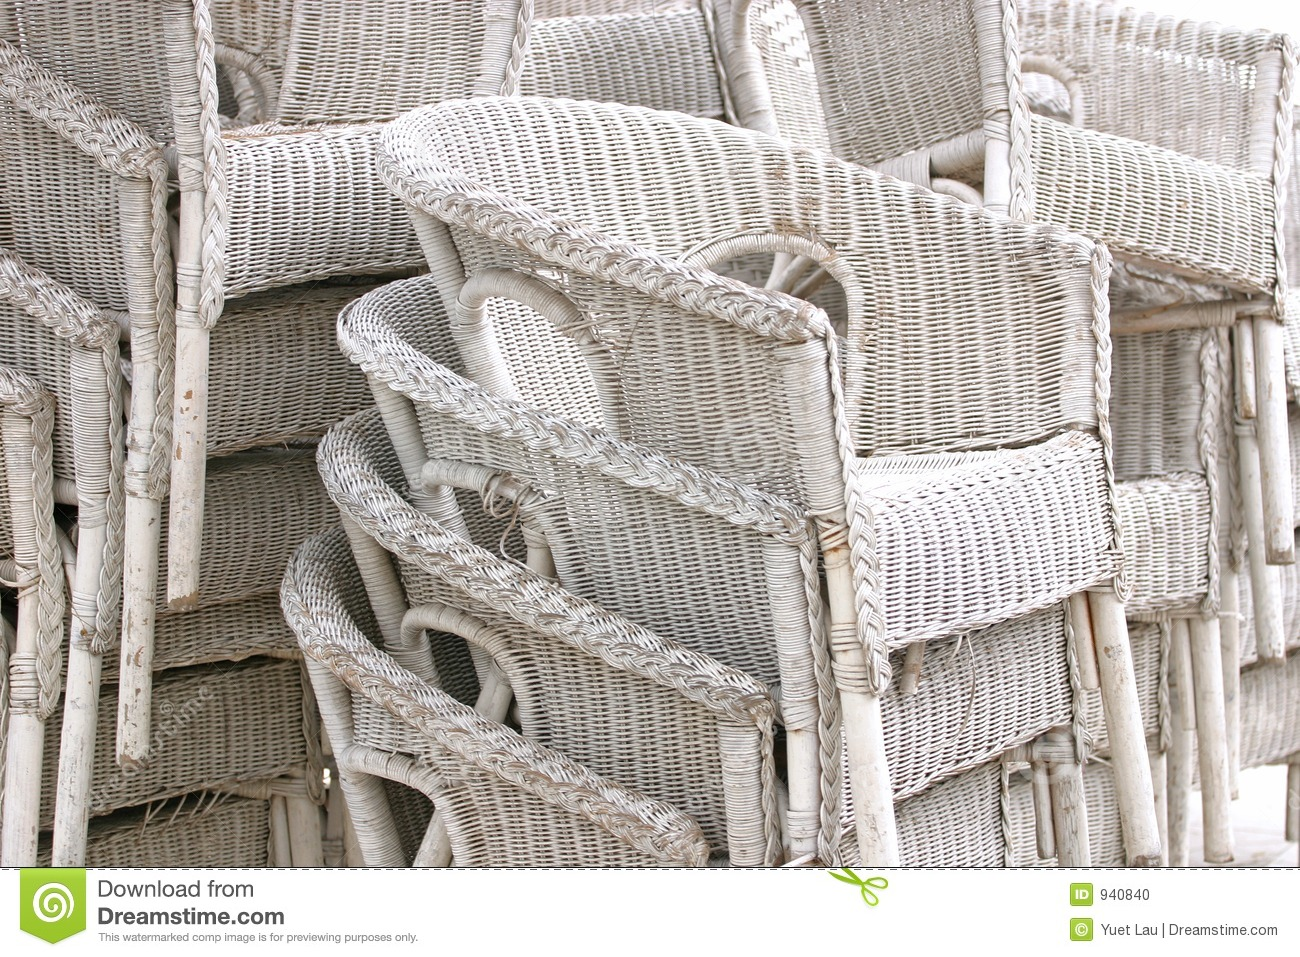 White Rattan Chairs Stock Photo - Image: 940840